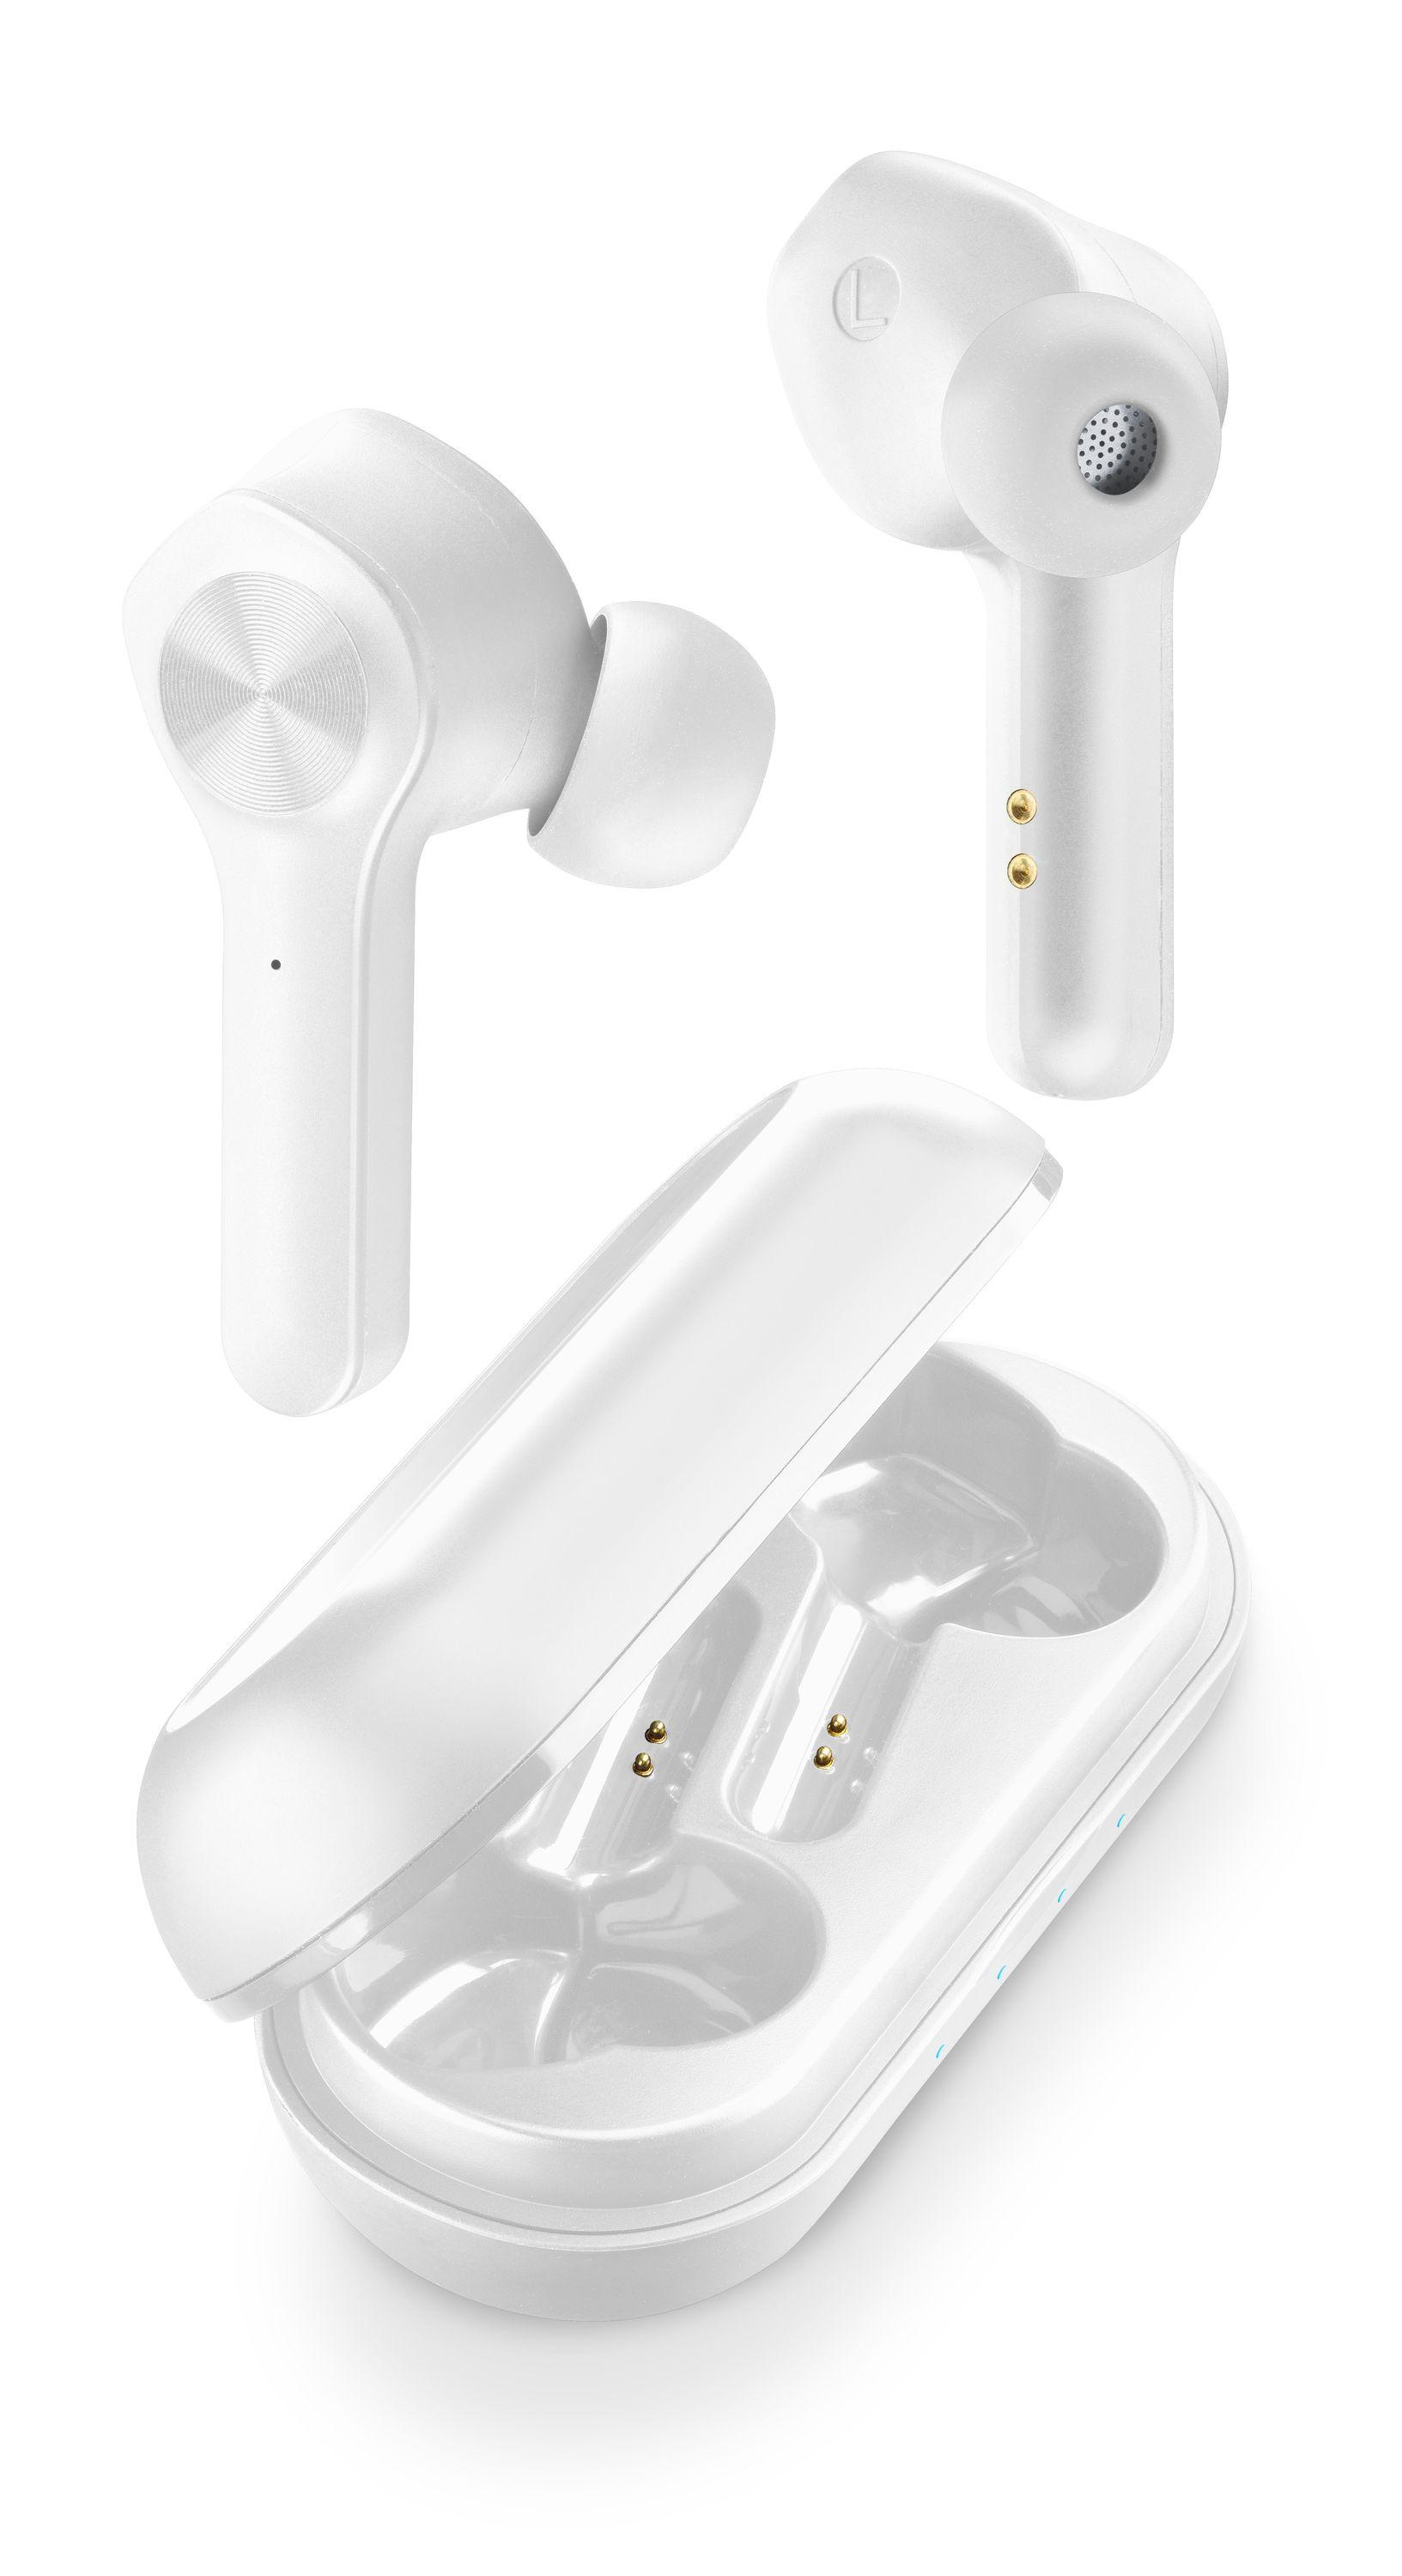 Cellularline Elusion - Universale Auricolari in-ear True wireless con custodia di ricarica Bianco